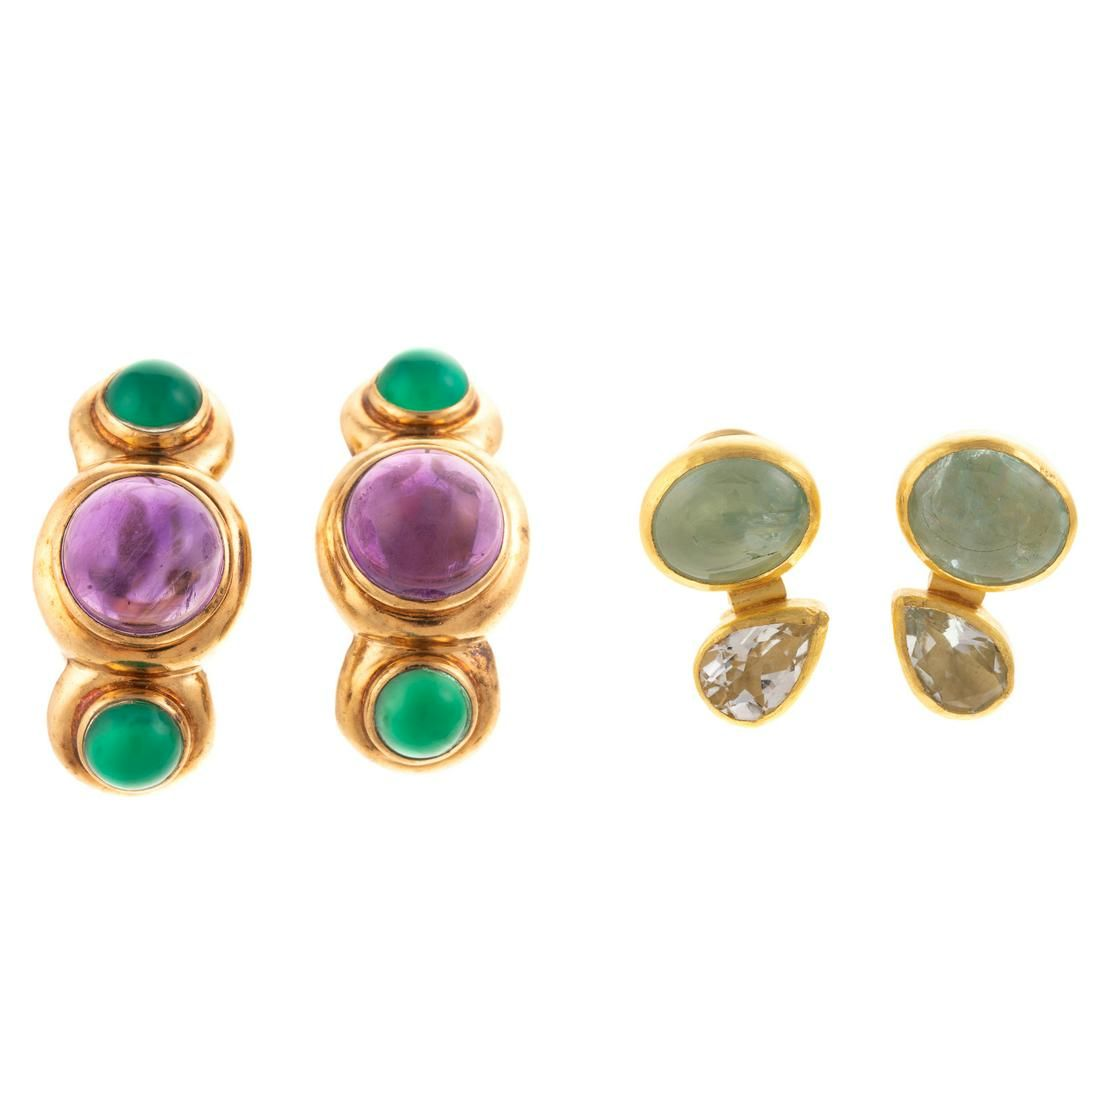 Two Pairs of Bezel Set Gemstone Earrings in Gold